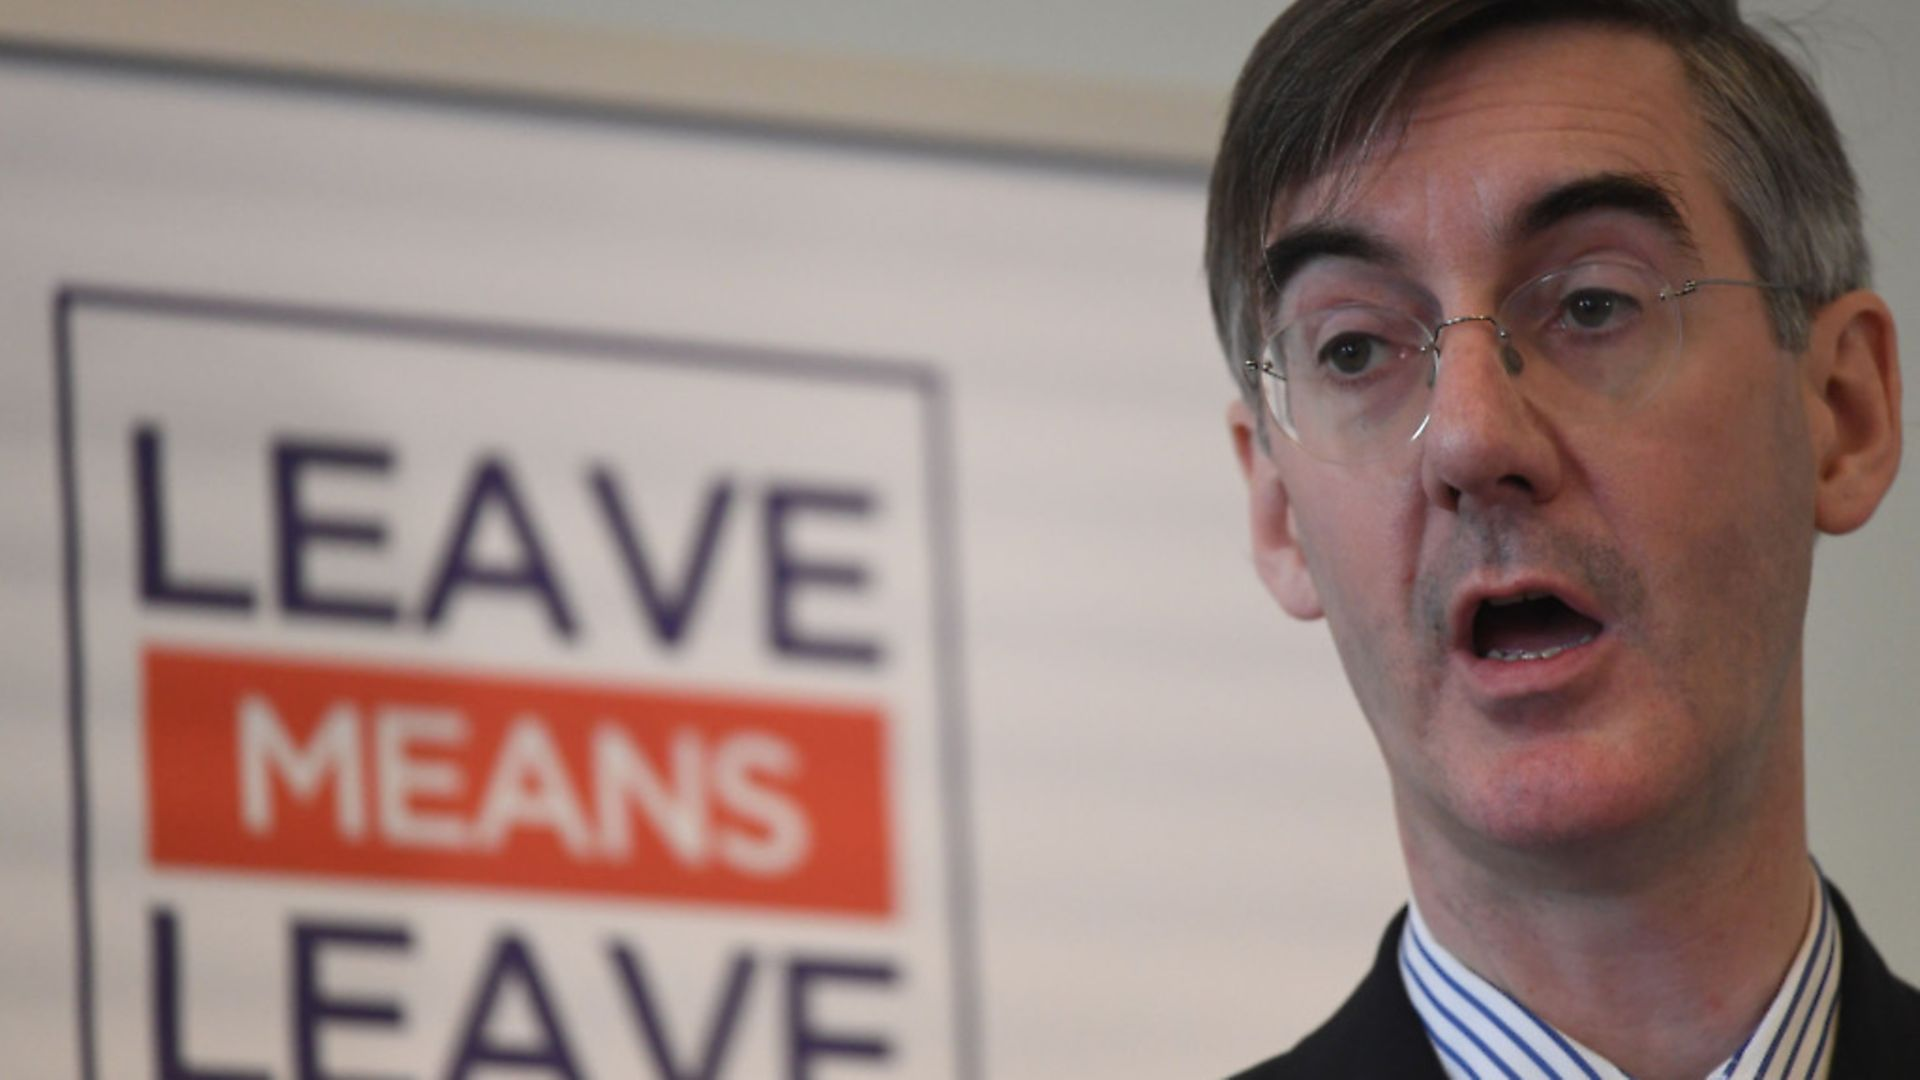 Conservative MP Jacob Rees-Mogg speaks about Brexit at a Leave Means Leave event at Carlton House Terrace, London. - Credit: PA Wire/PA Images